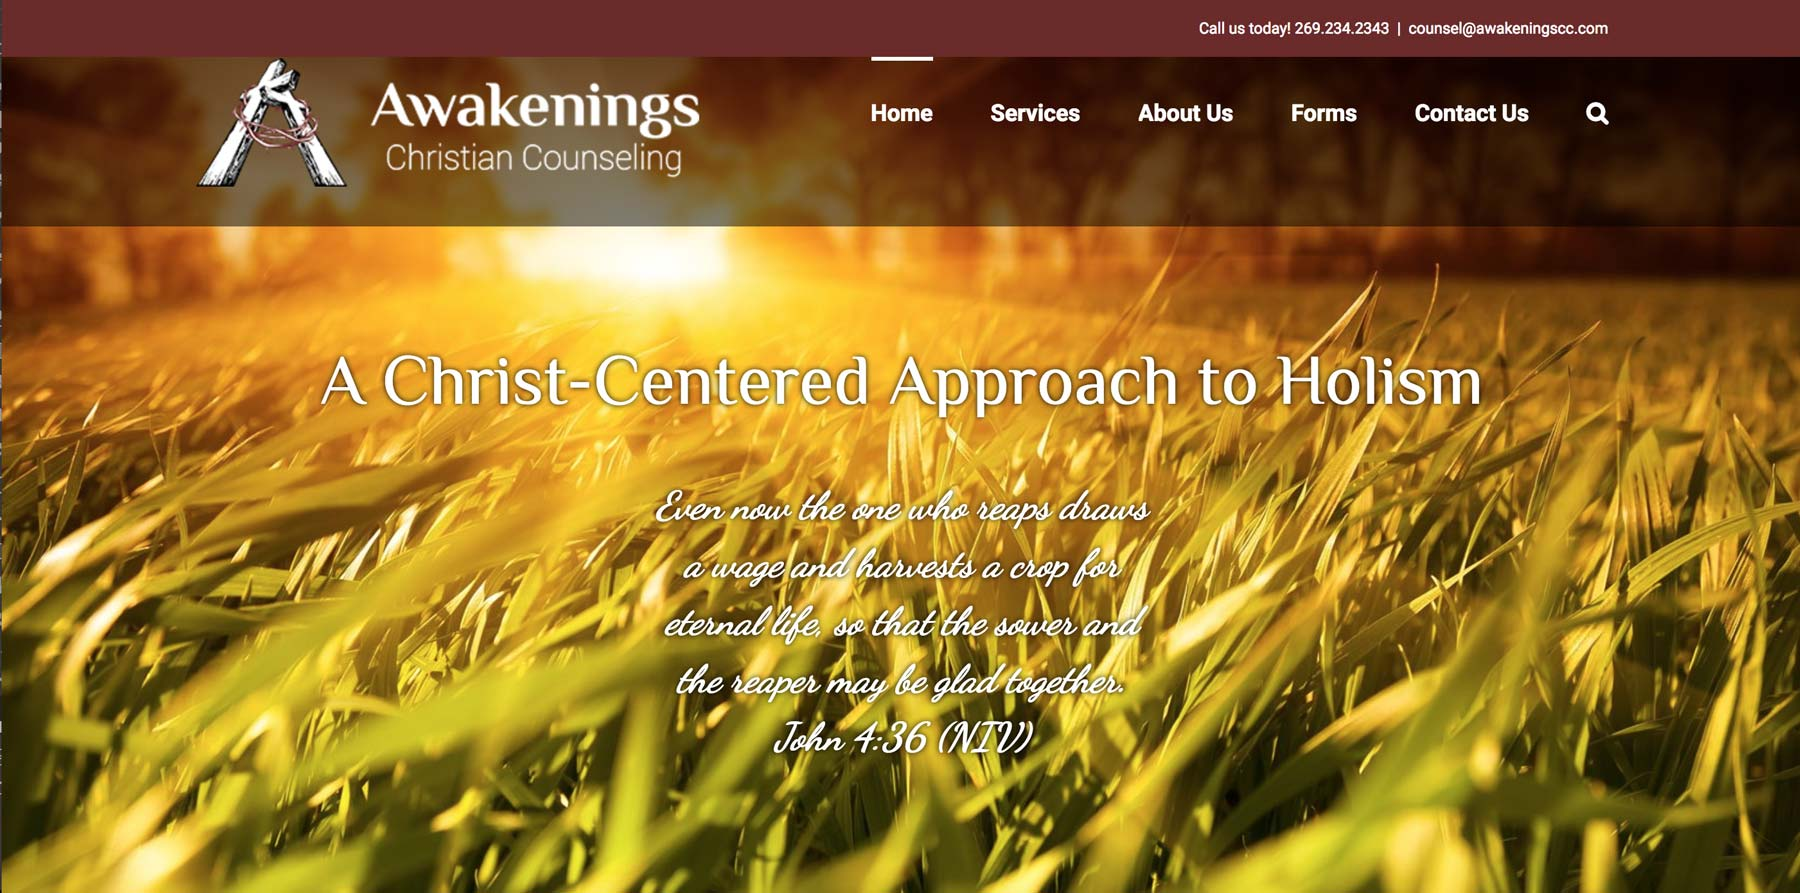 awakenings Christian counseling